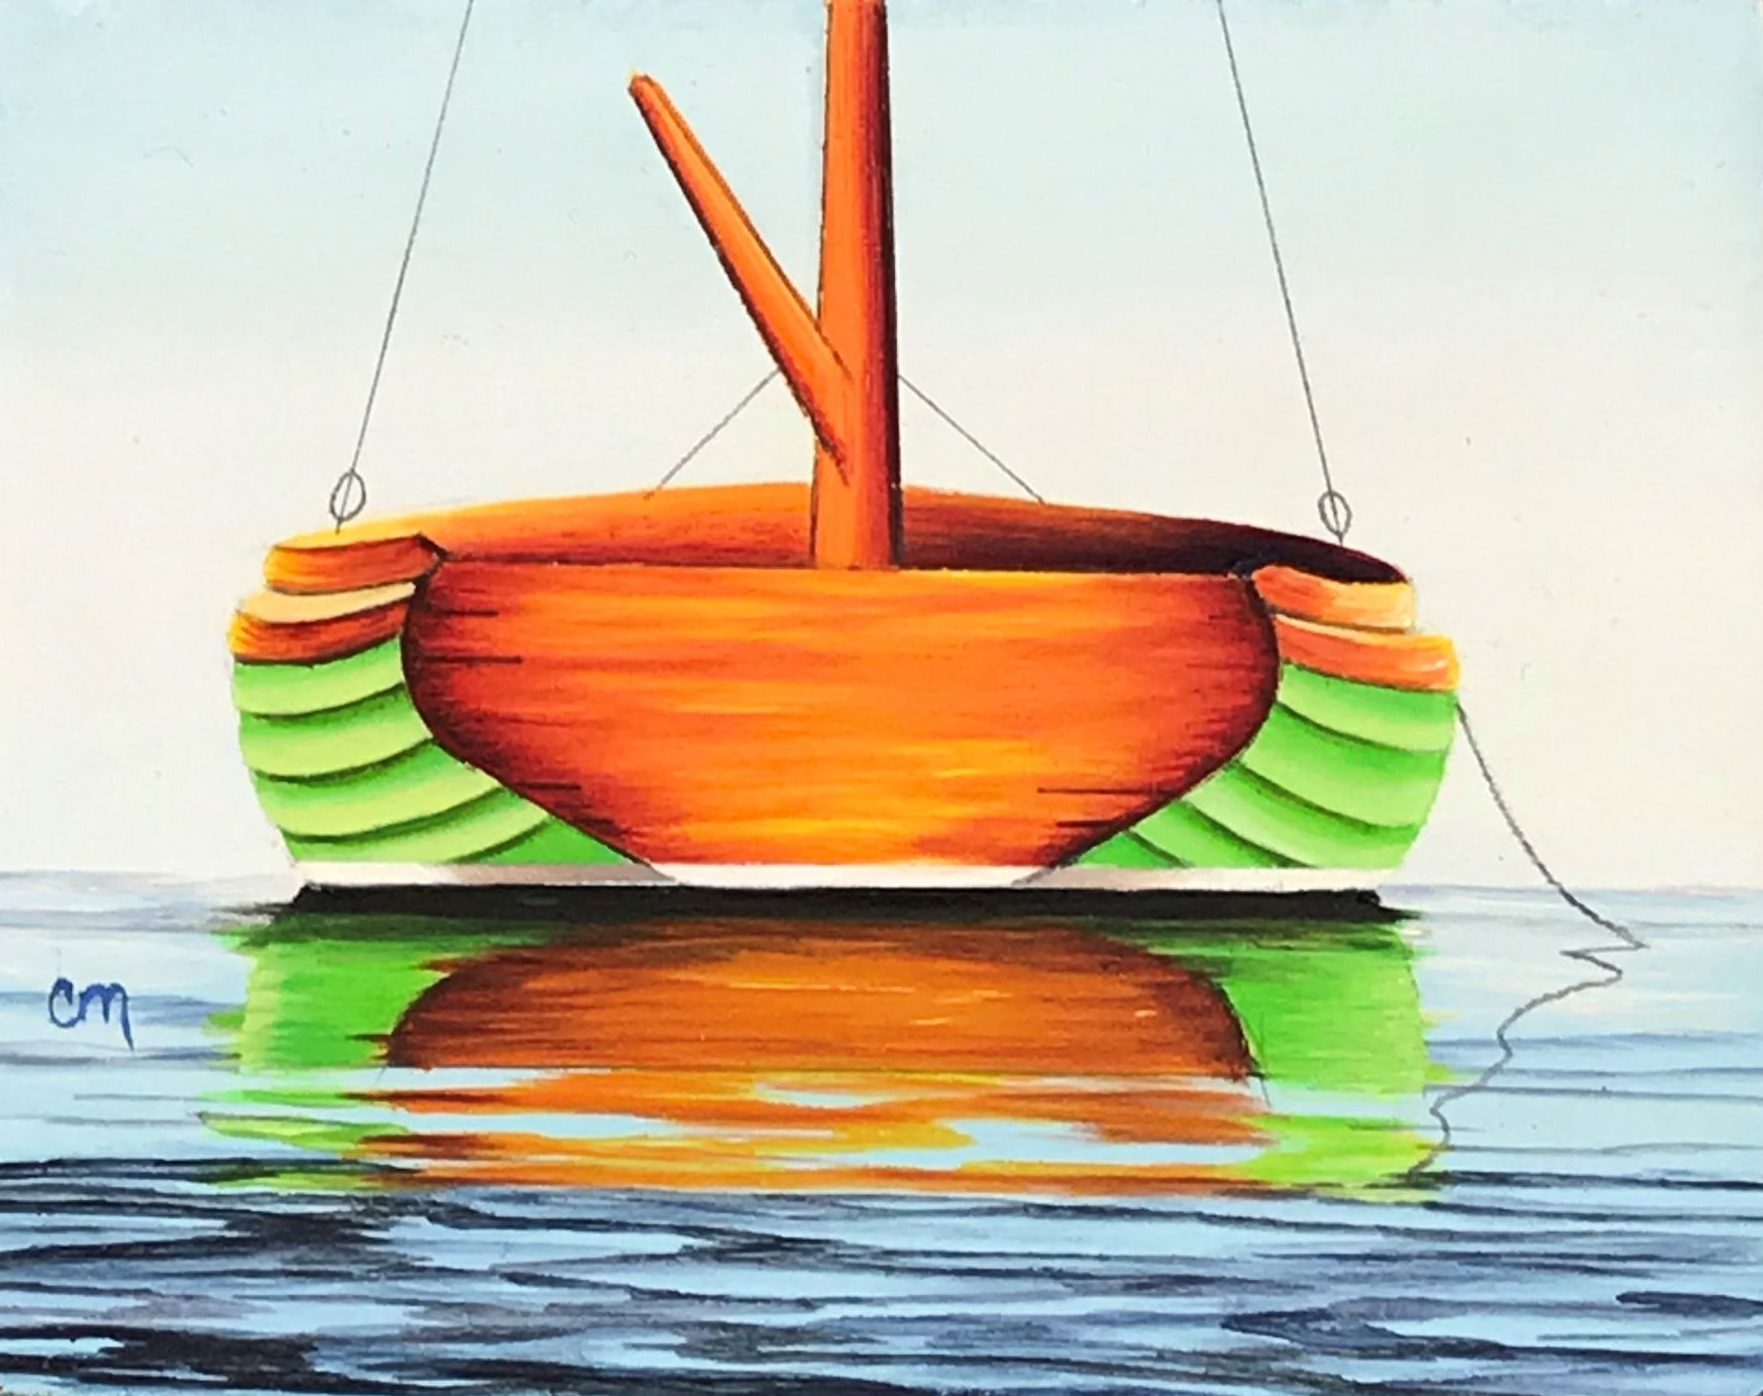 Lime Green Cat Boat, 4x5